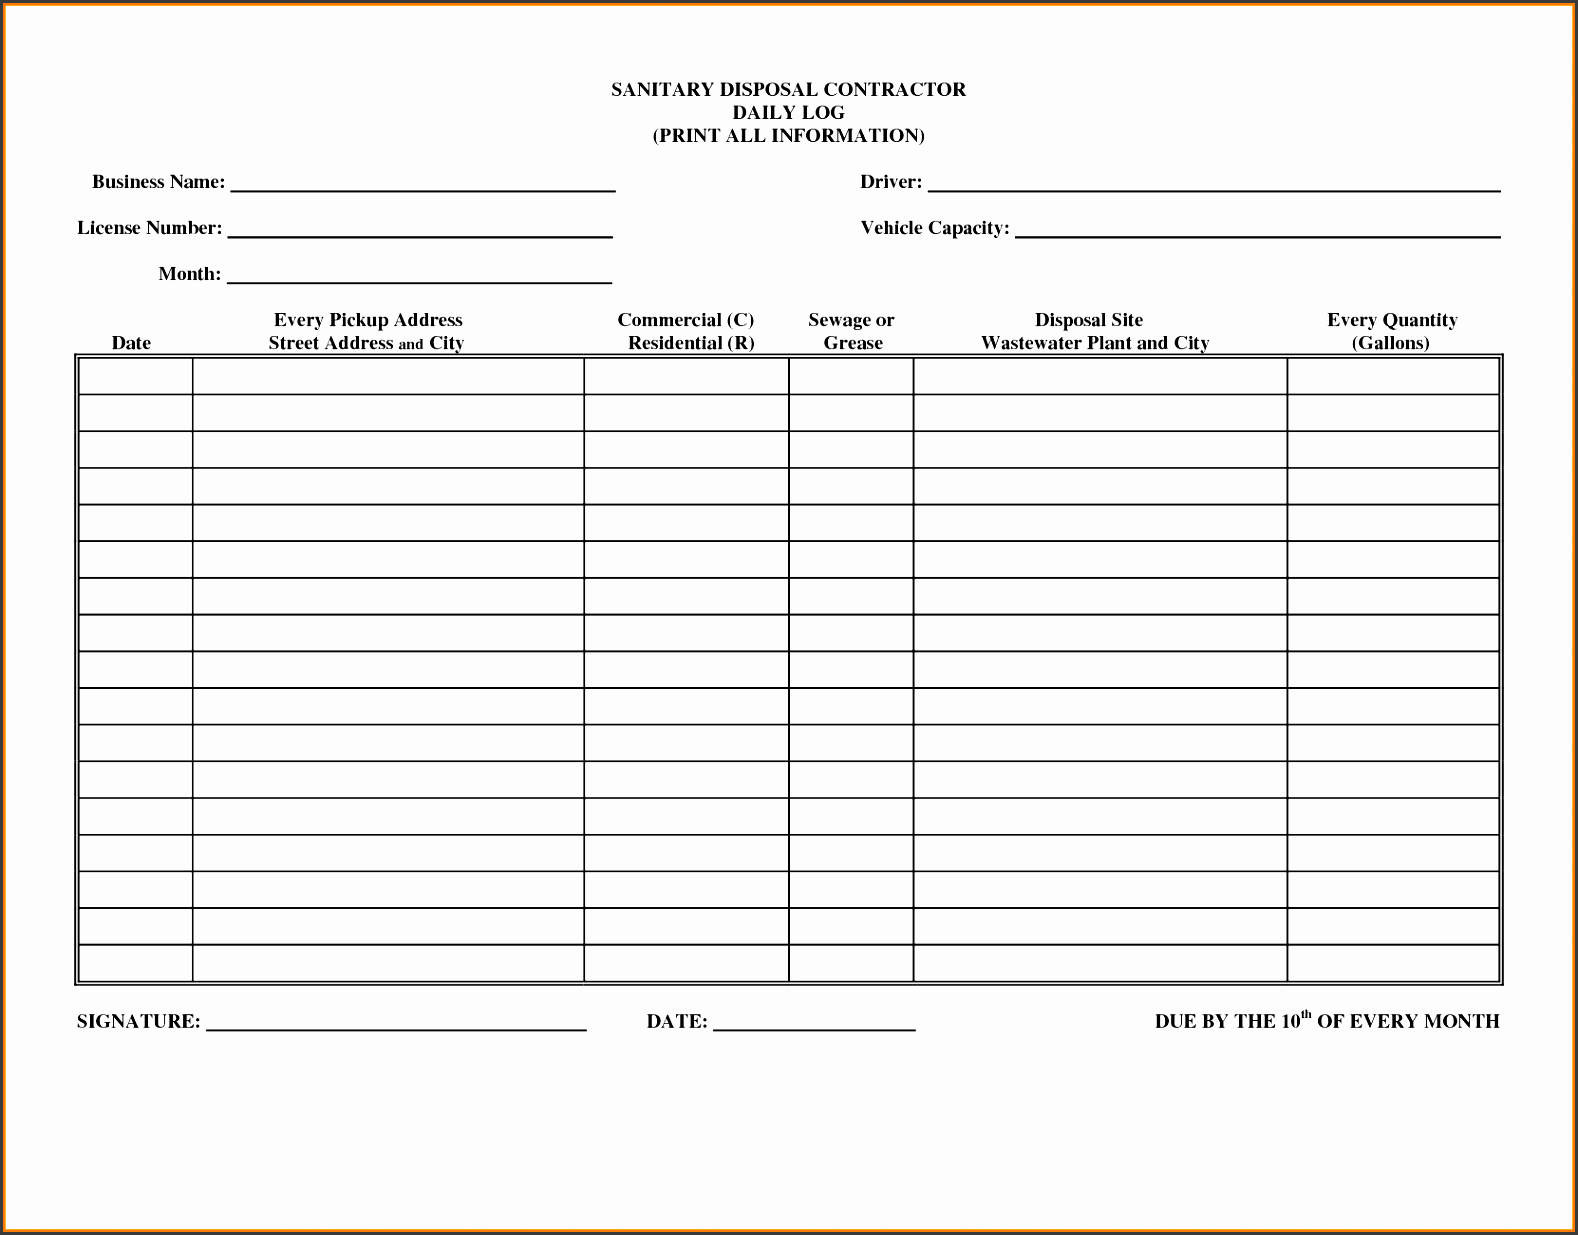 4 Online Daily Activity Log Template